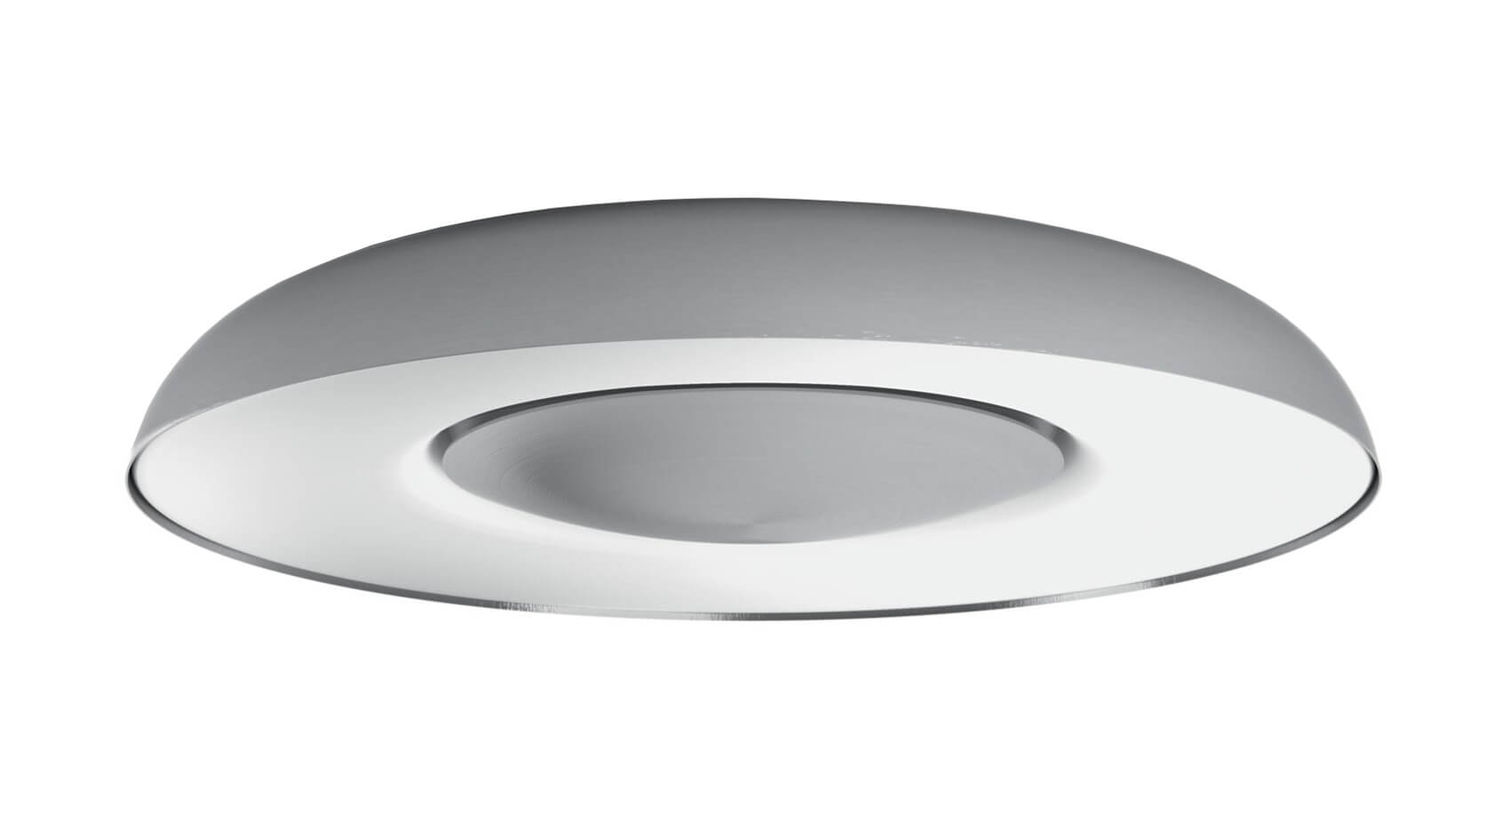 Plafoniera A Led Beign Philips Hue : Philips hue being led incl. dimmer switch bianco plafoniera